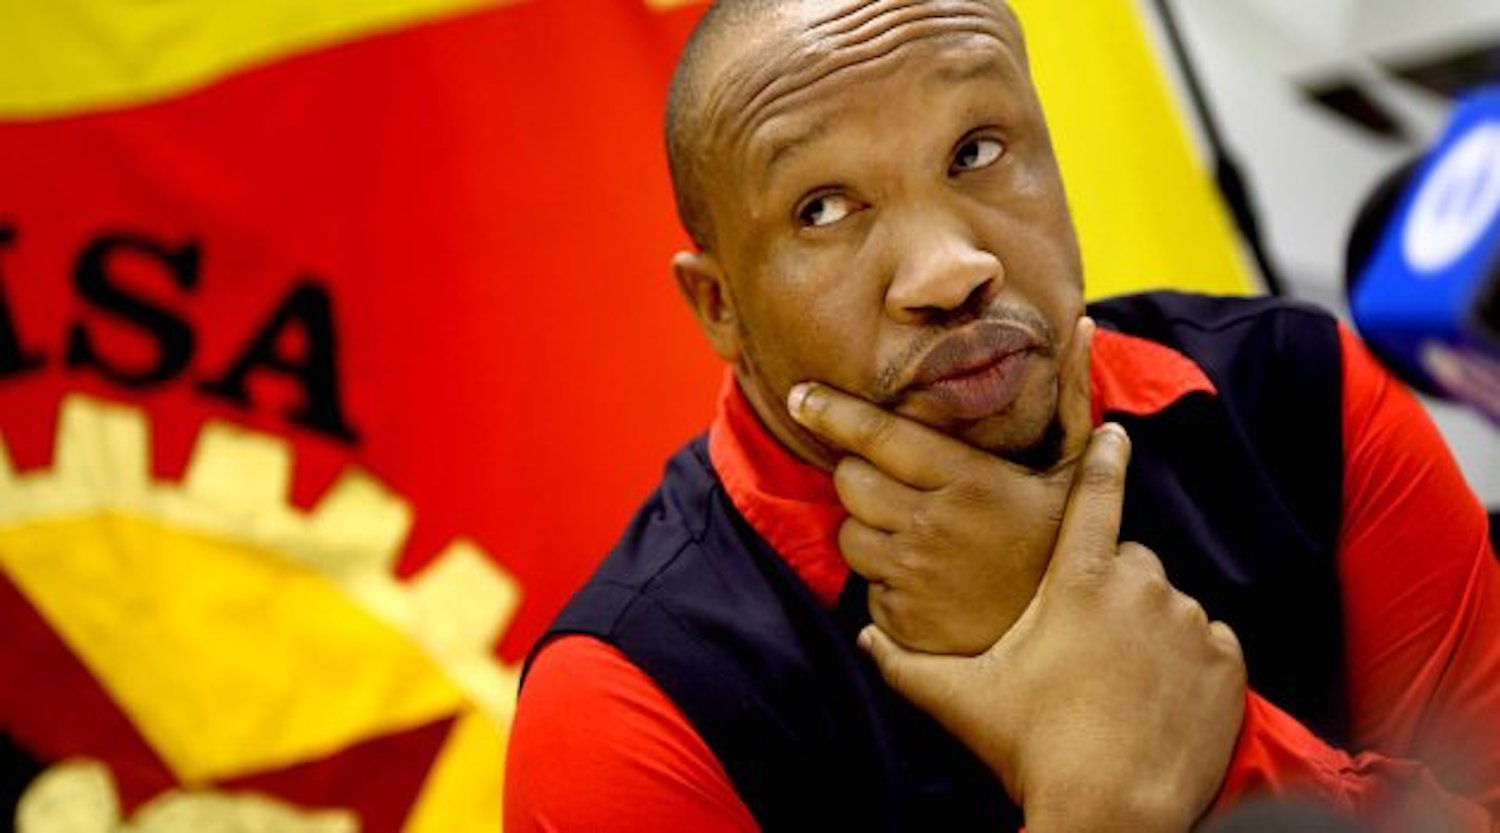 Cyril Ramaphosa Has No Agenda Except Neoliberal Policies, Says NUMSA's Irvin Jim